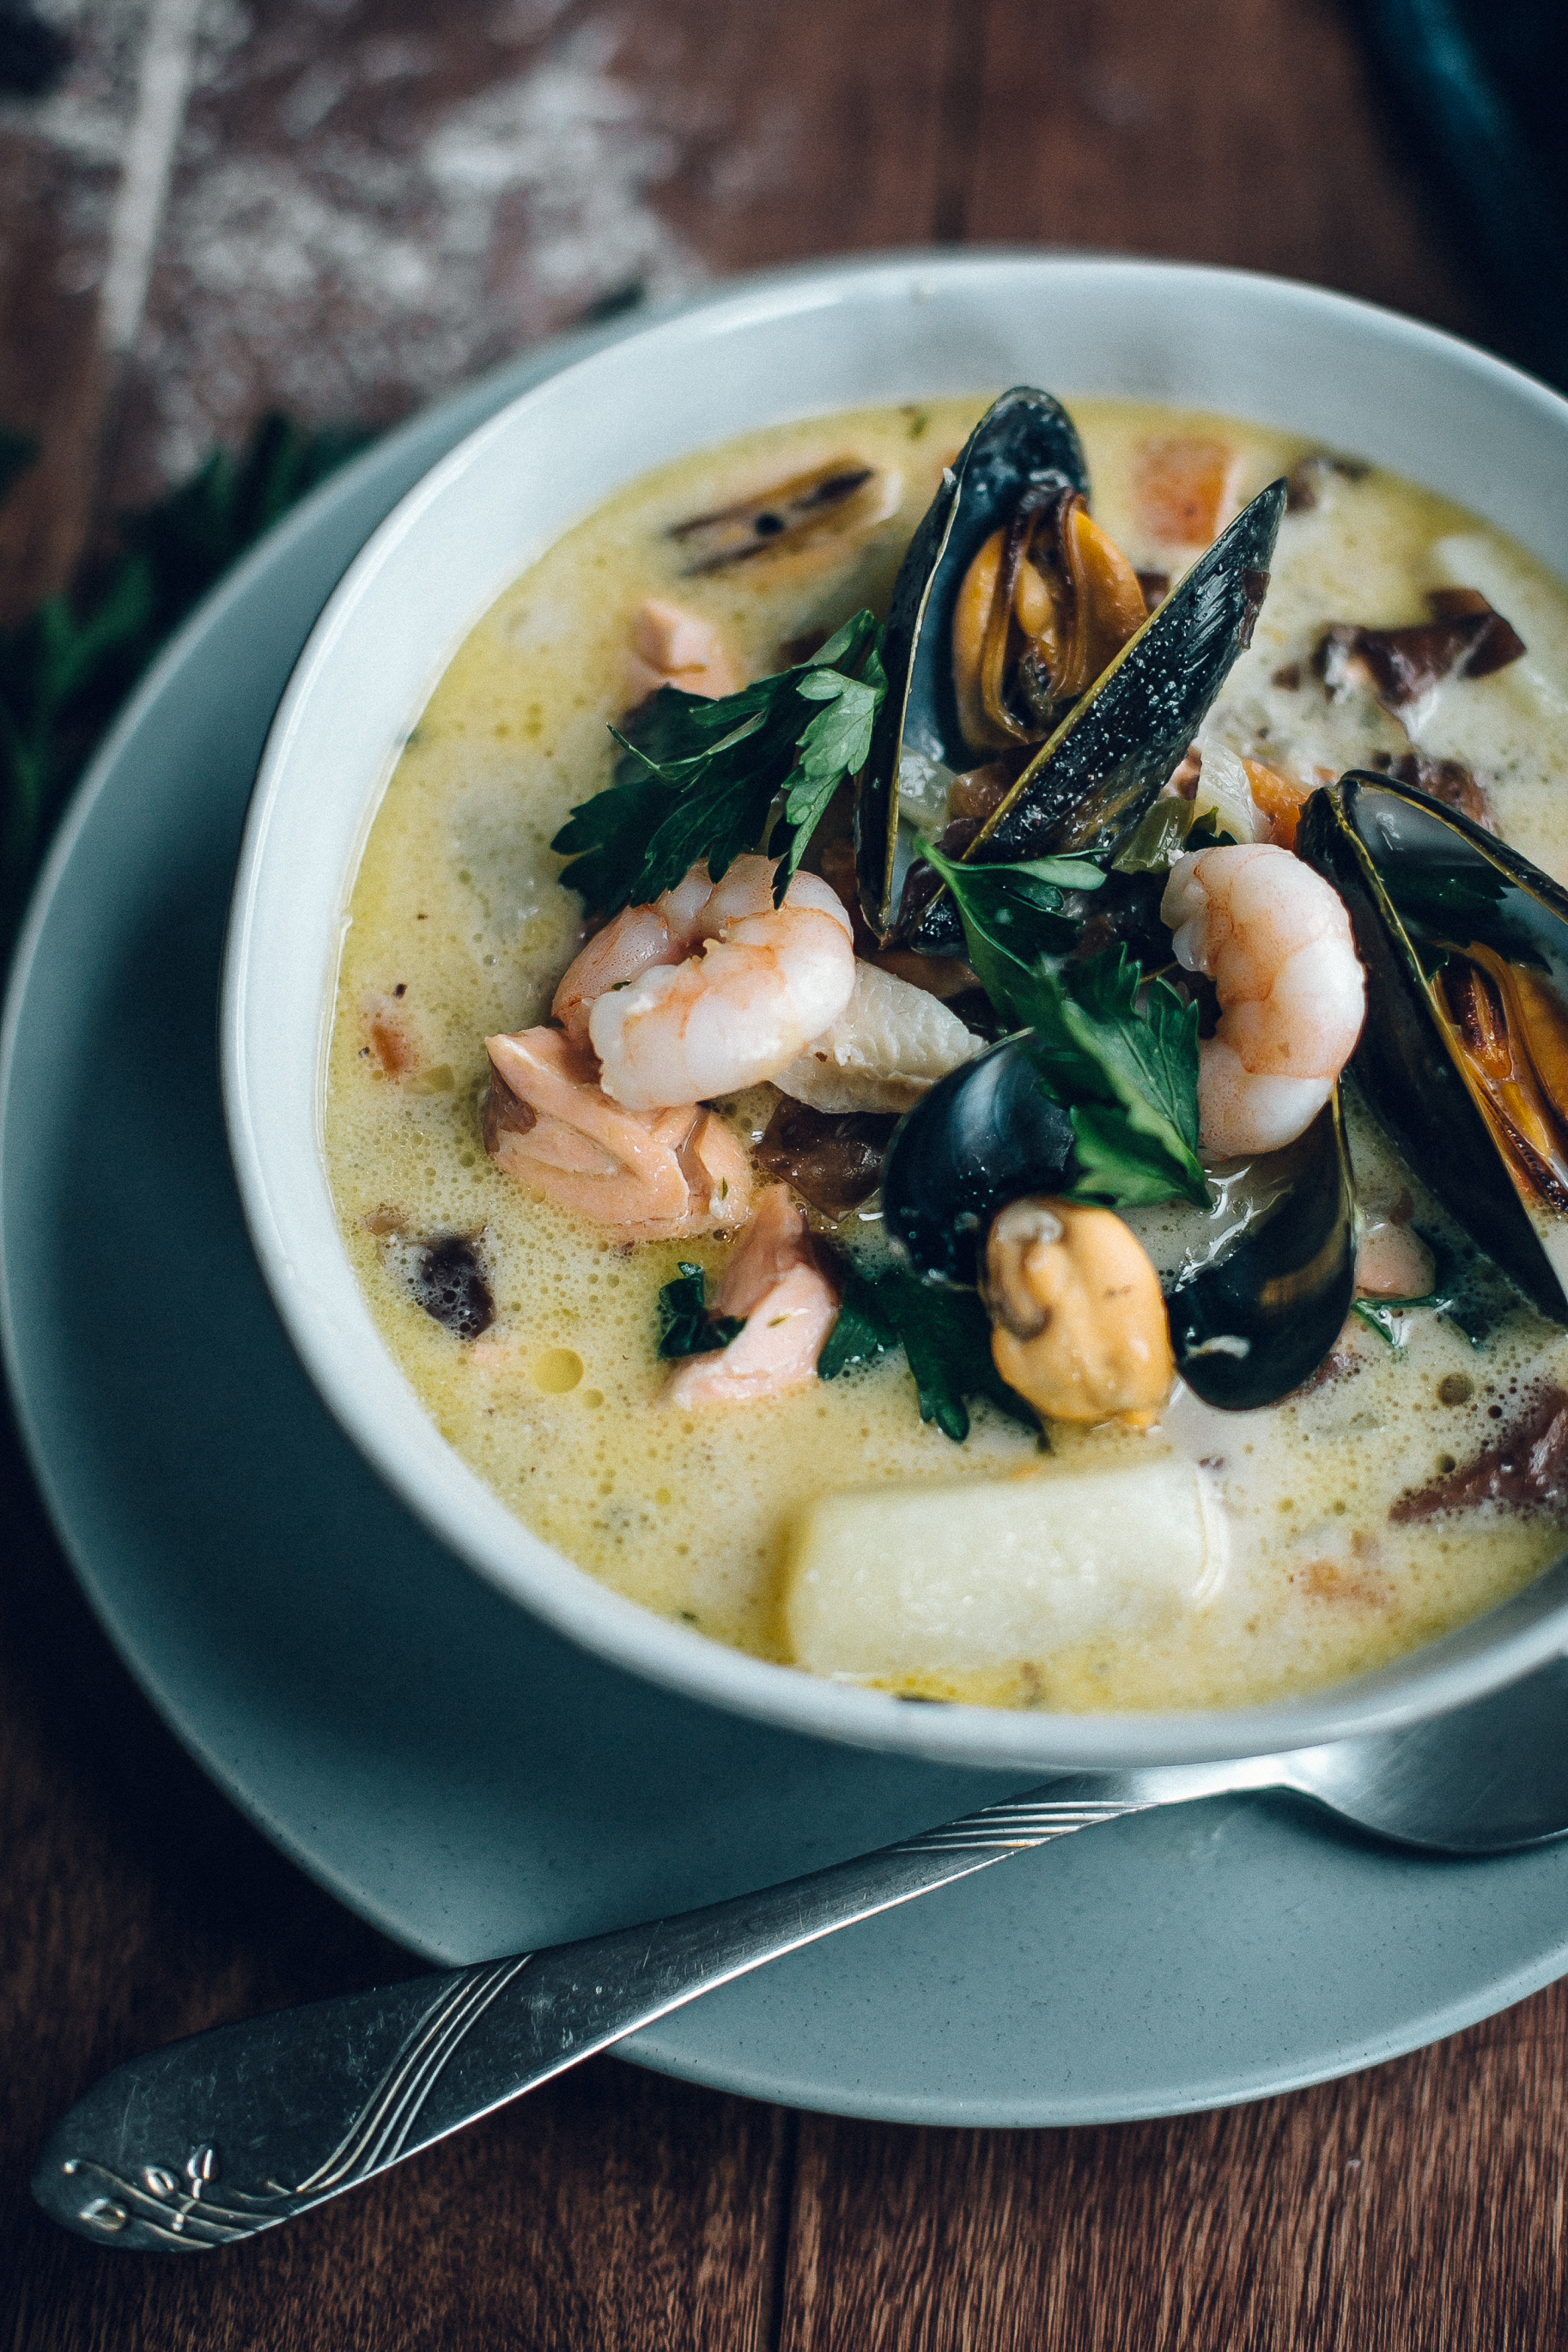 Seafood Chowder With Dillisk & Seed Brown Bread For St Patrick's Day